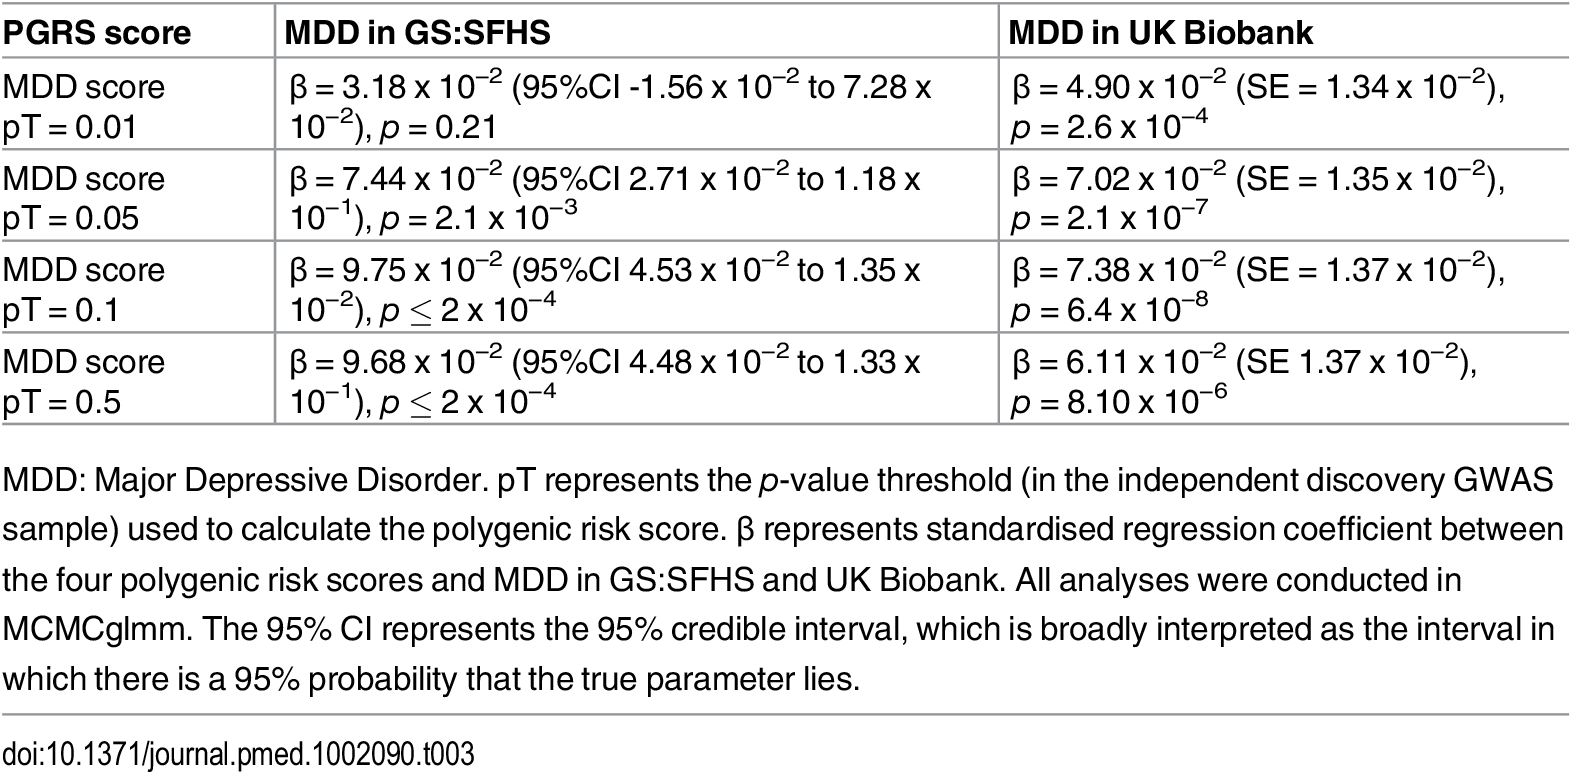 Association between MDD-related traits in GS:SFHS and UK Biobank with the Psychiatric Genomics Consortium derived MDD polygenic risk scores.